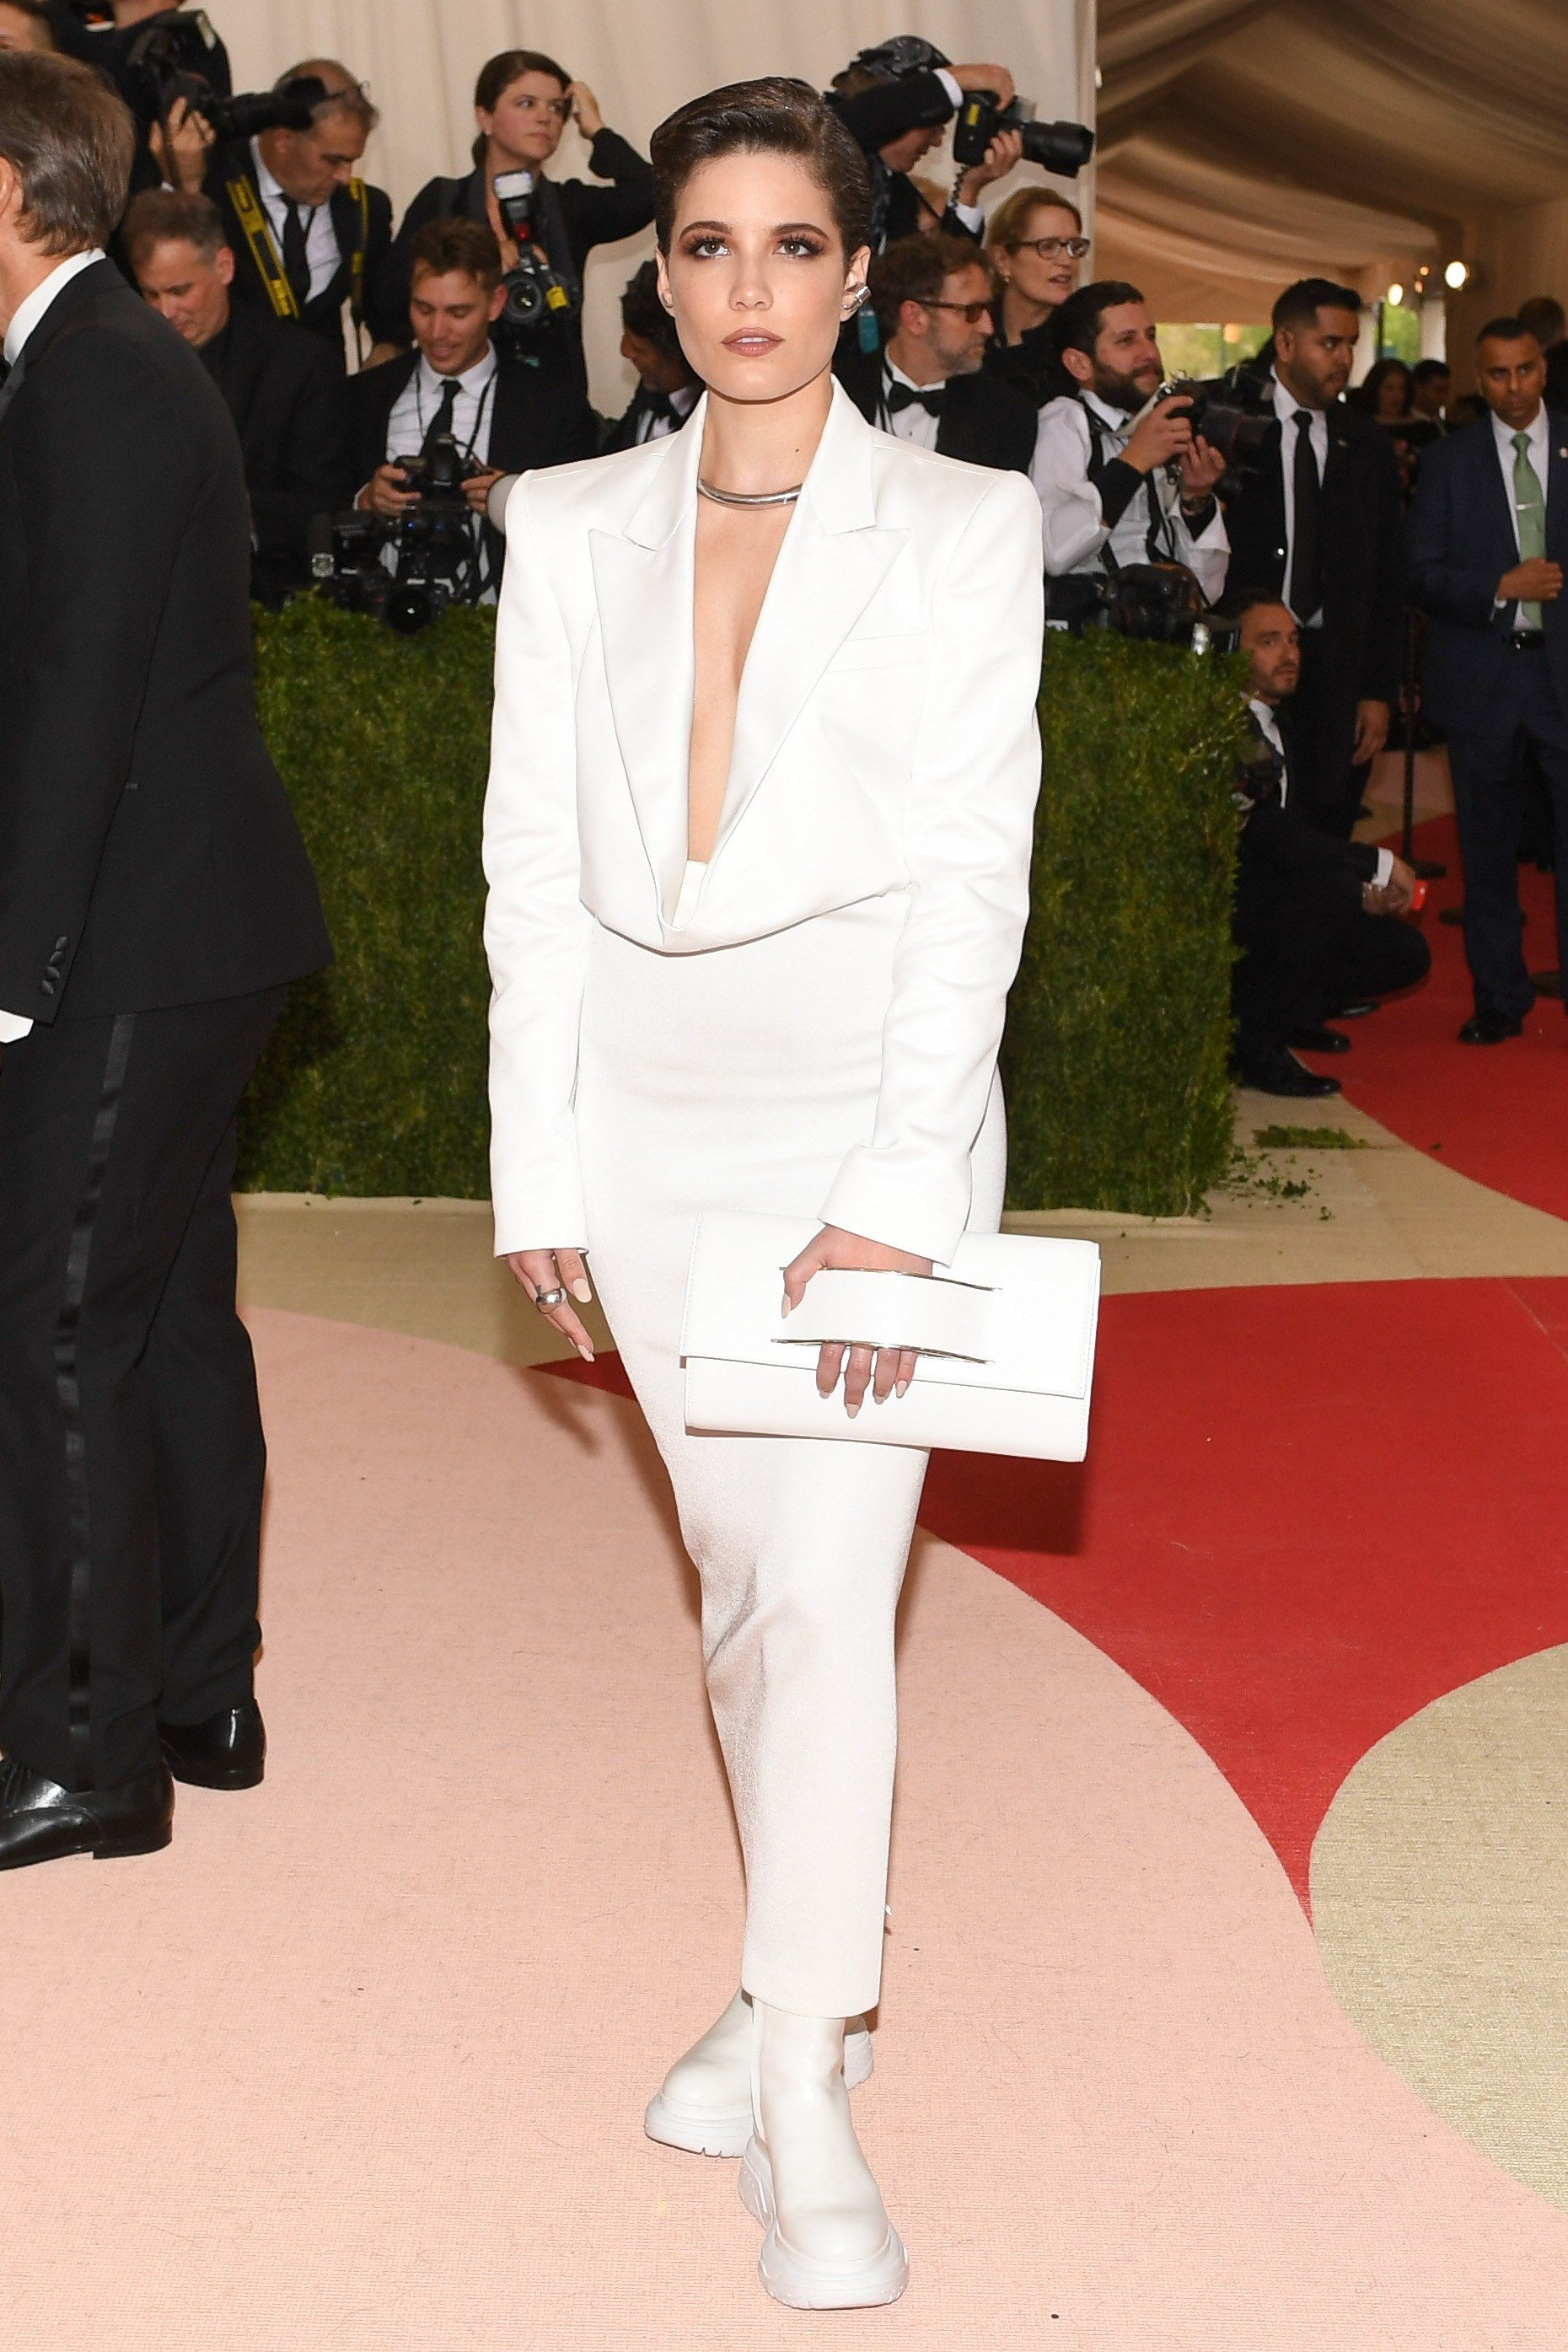 a662ff01d27a1 21 Years of Met Gala Themes: A Look Back At Met Gala History ...